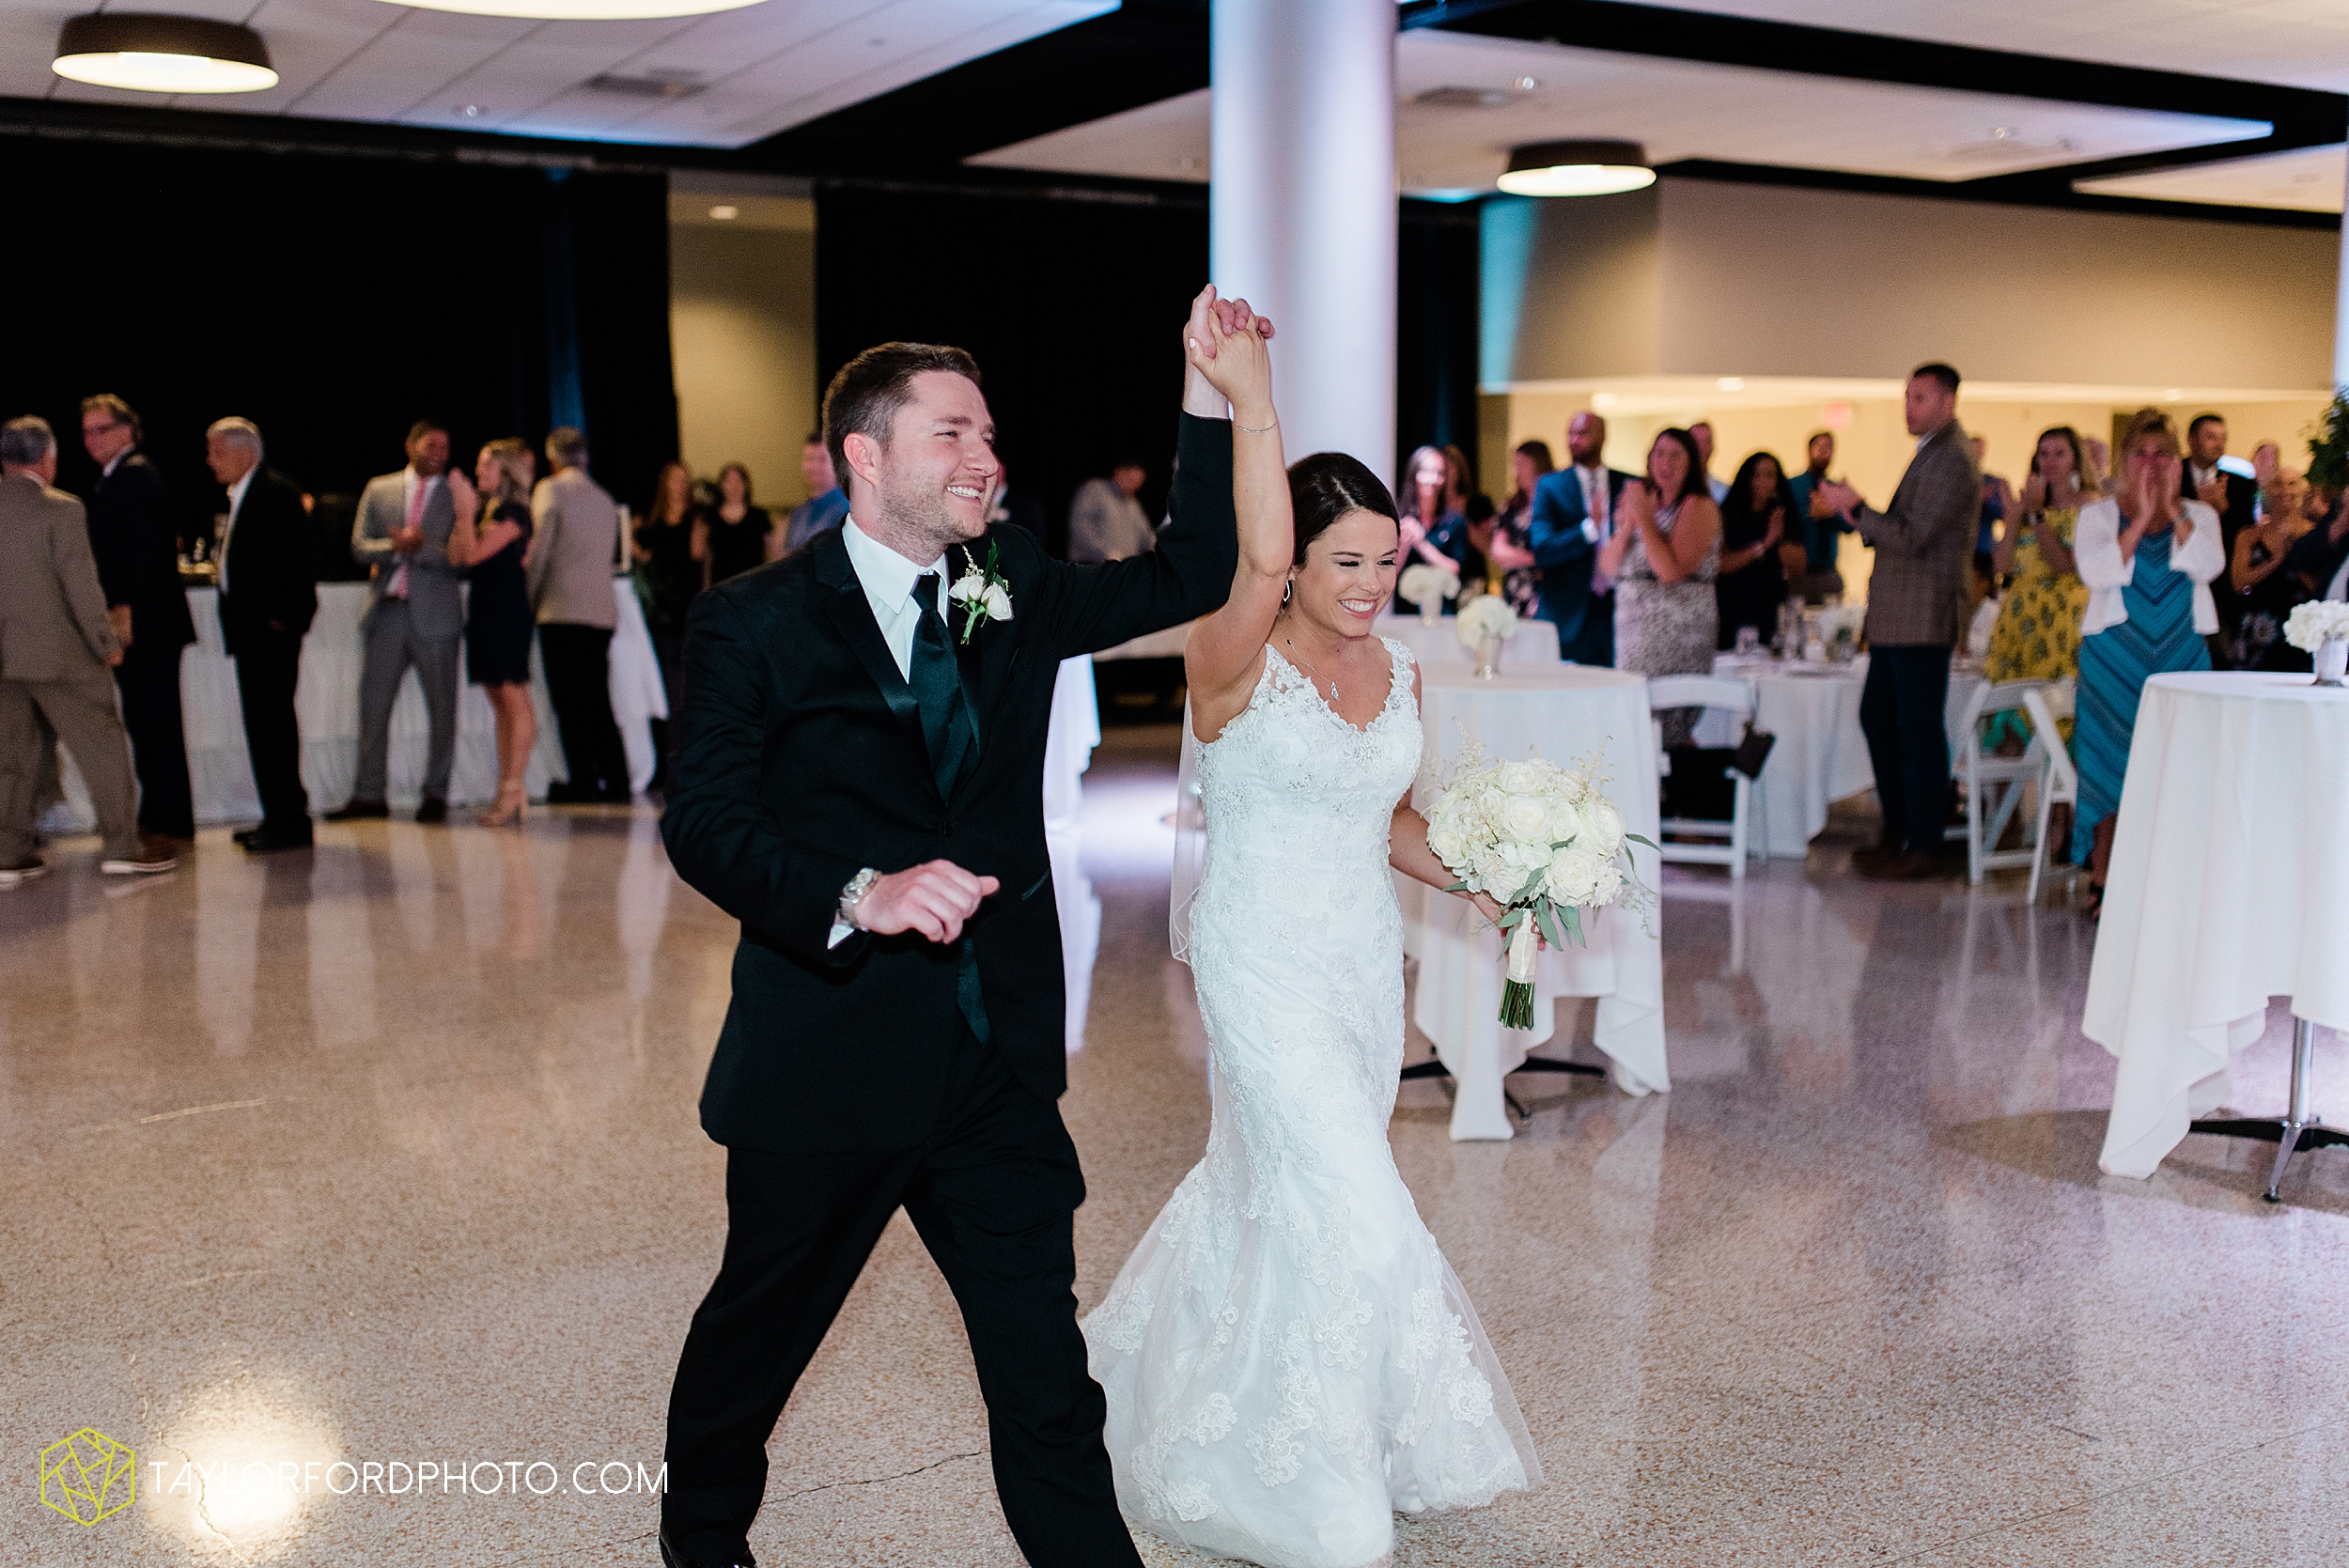 sullivan-st-francis-university-performing-arts-center-usf-saint-charles-borromeo-catholic-church-downtown-fort-wayne-indiana-wedding-photography-taylor-ford-hirschy-photographer_3250.jpg